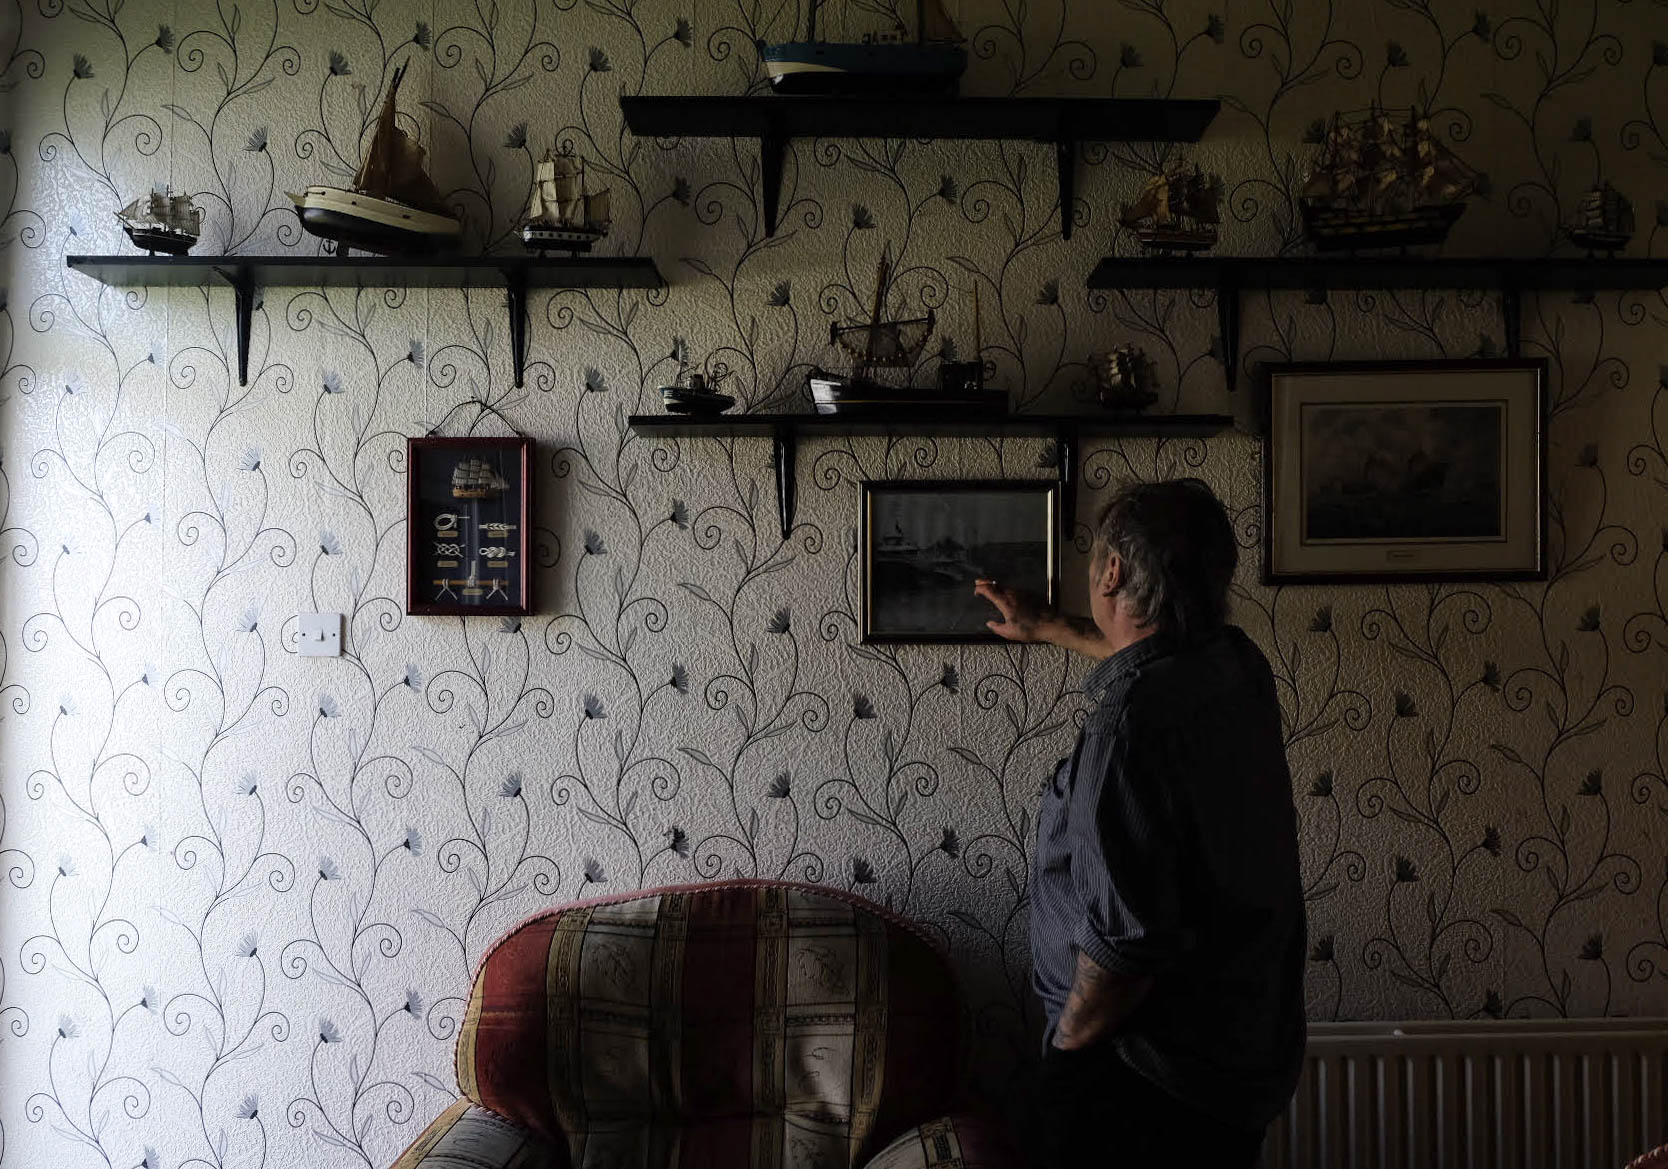 Retired fisherman Peter Cole, 62, points to an old photograph of the local docks at his home in Grimsby, U.K., on May 27, 2016.